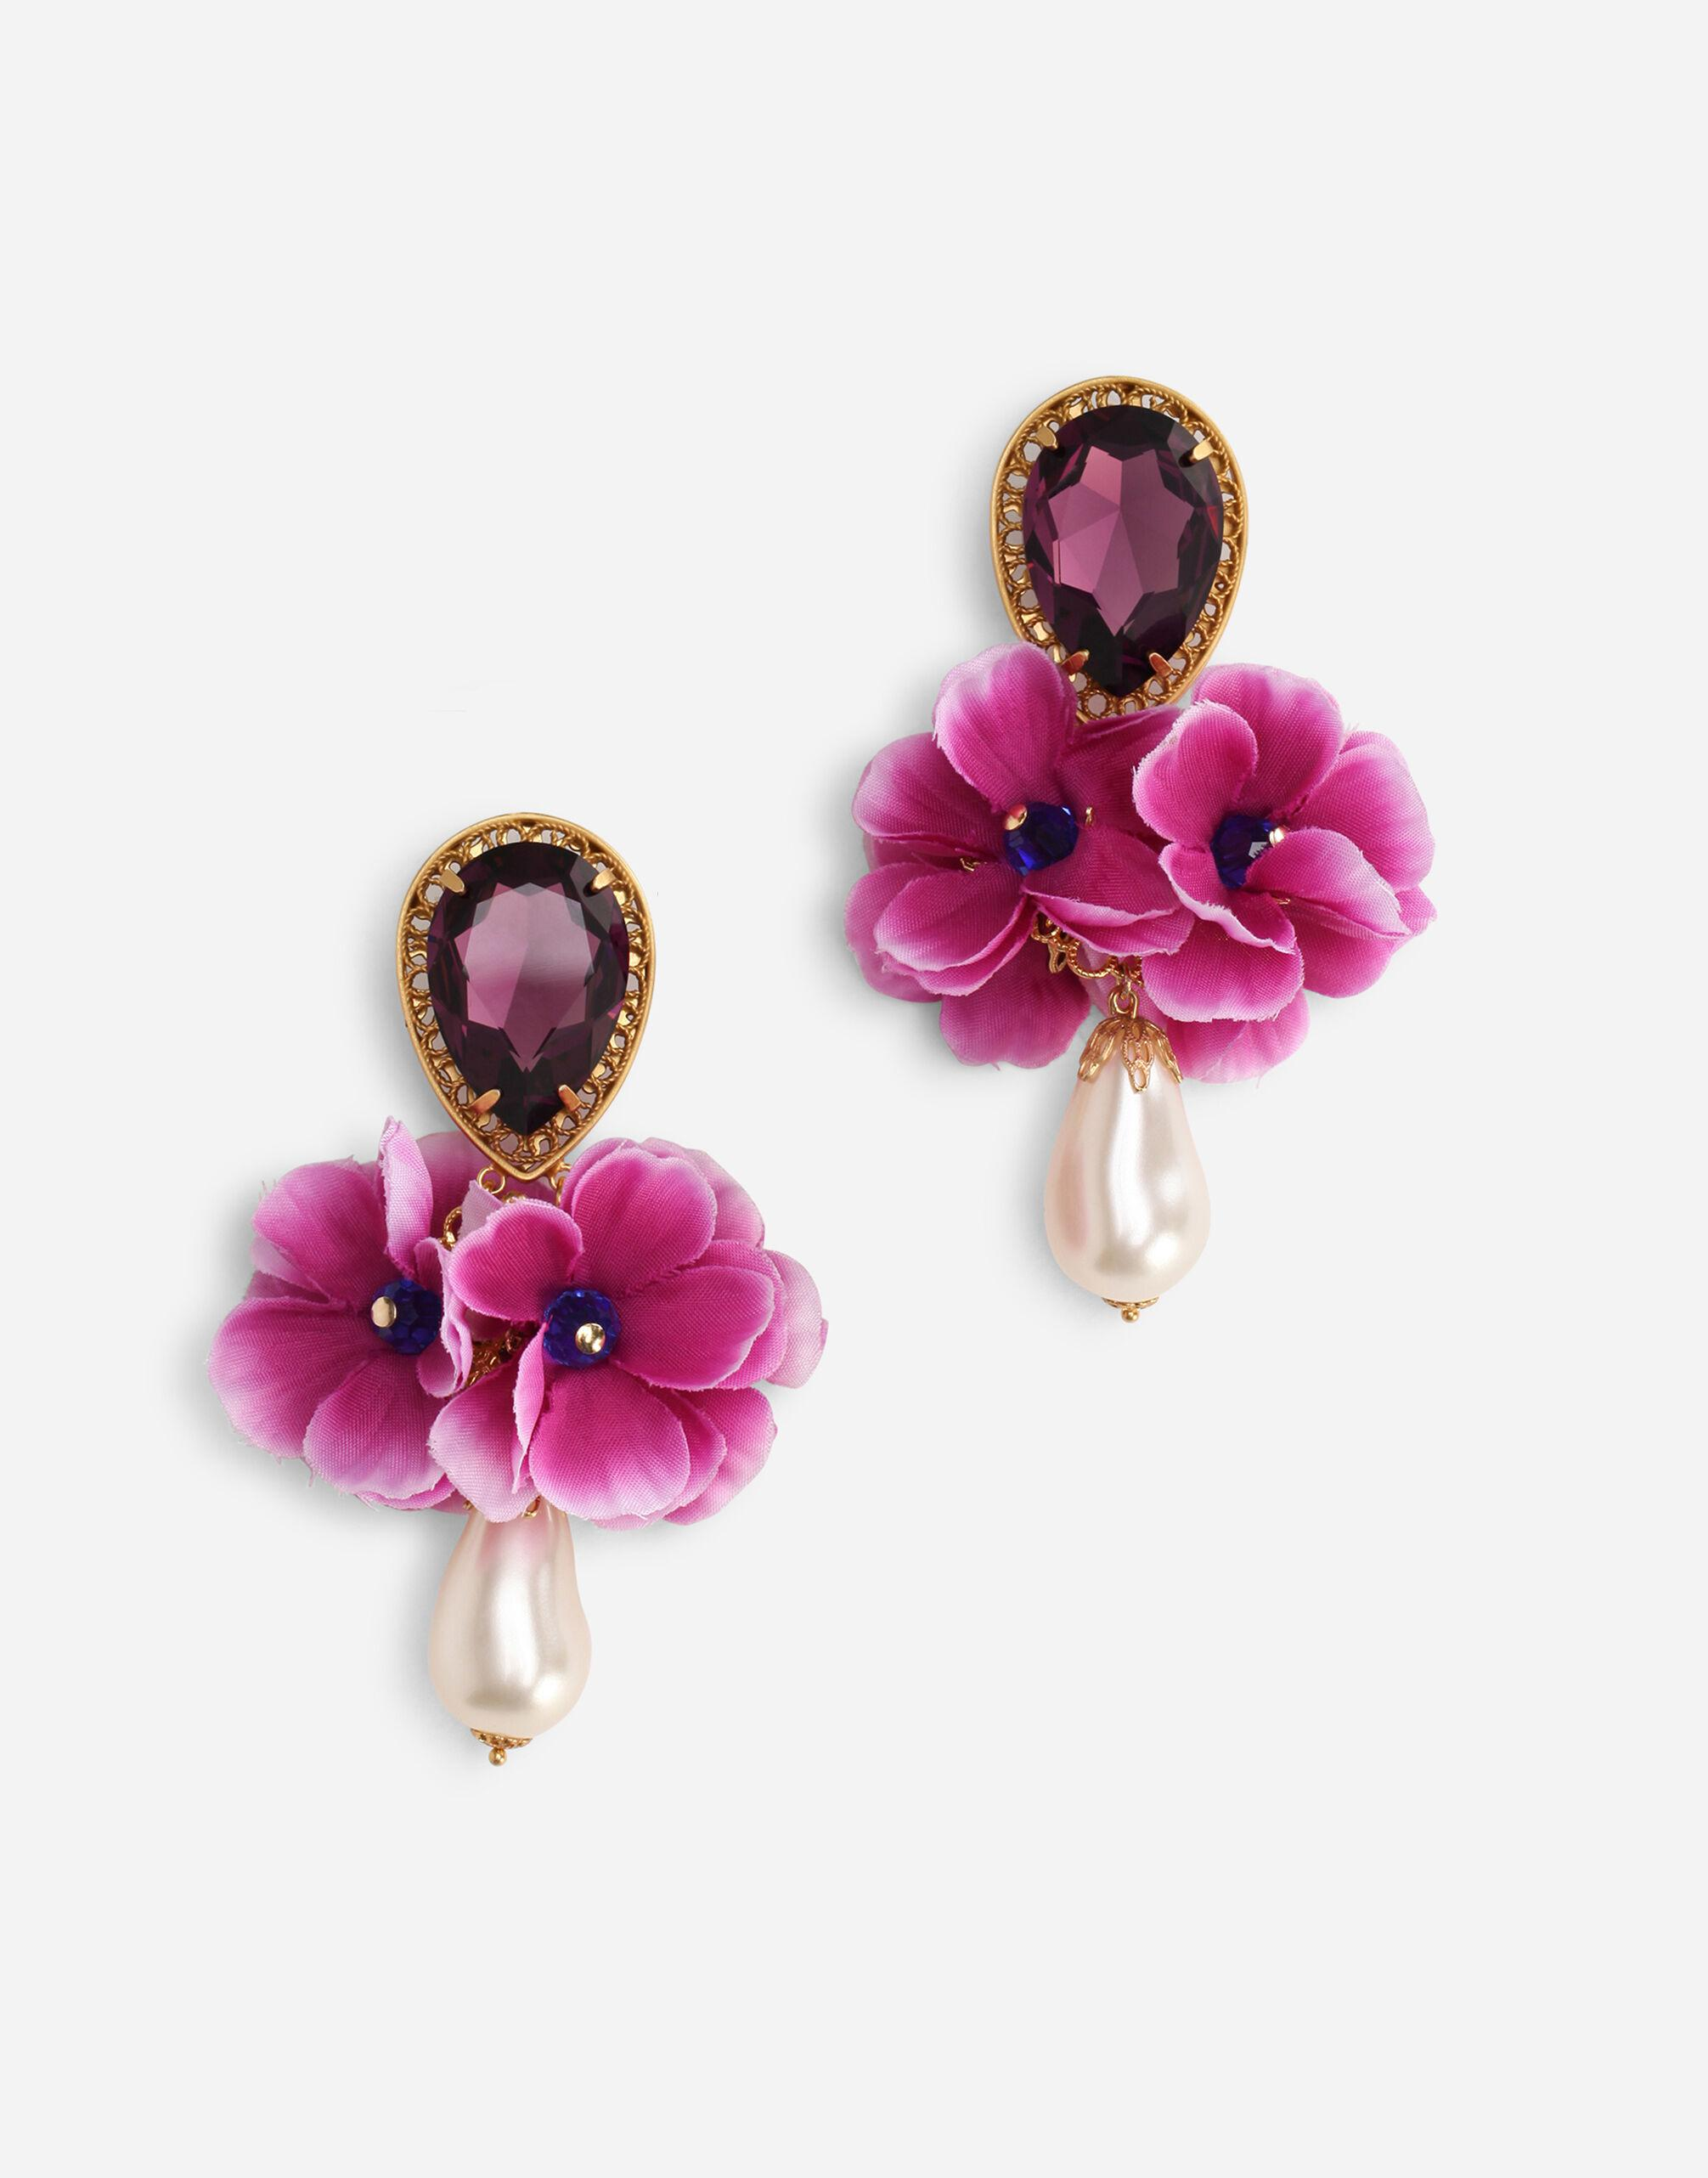 Drop earrings with rhinestone and fabric flowers